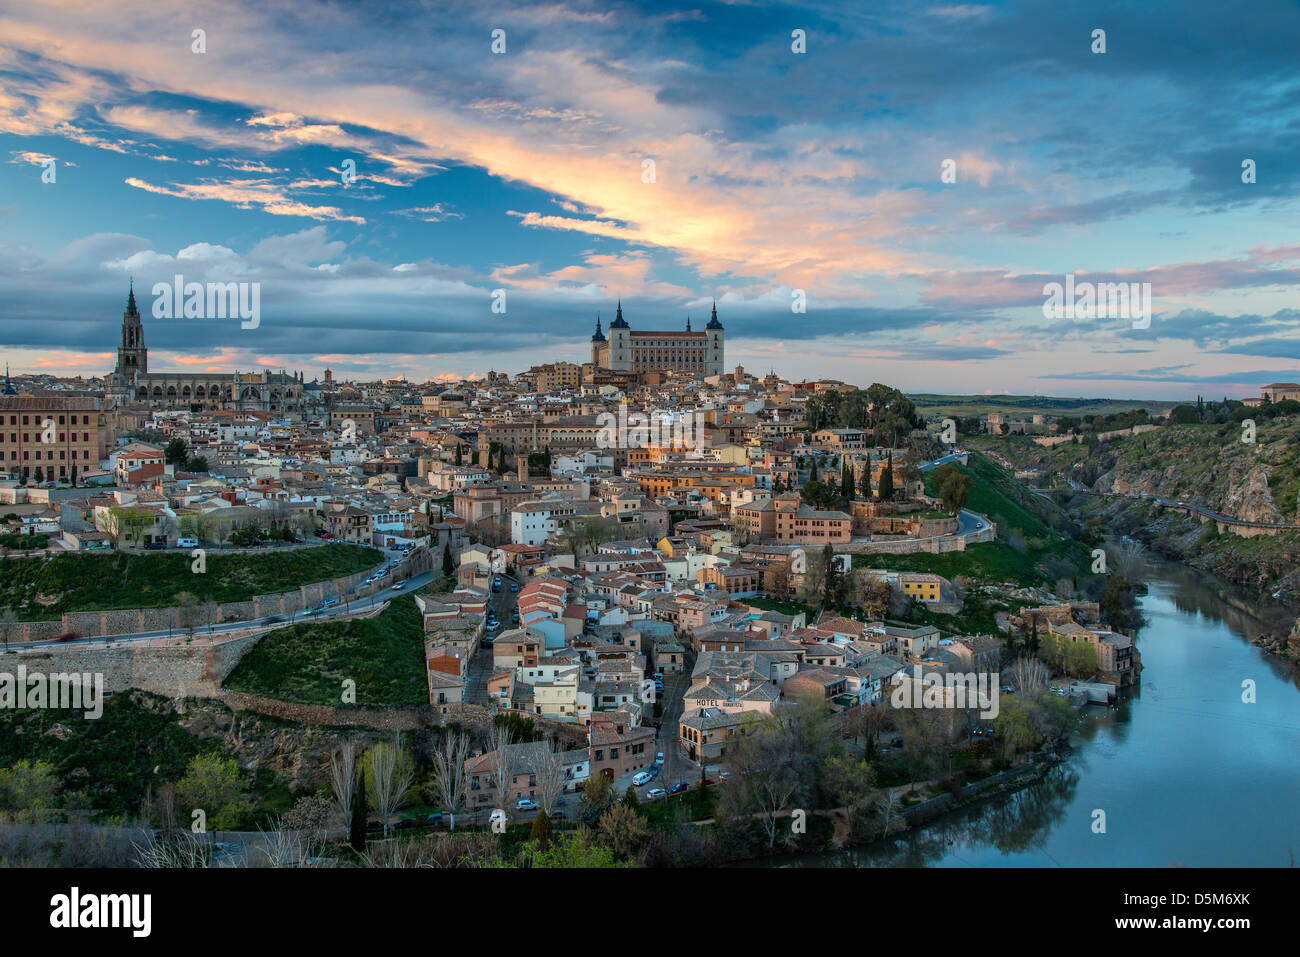 Skyline at sunset, Toledo, Castile La Mancha, Spain - Stock Image